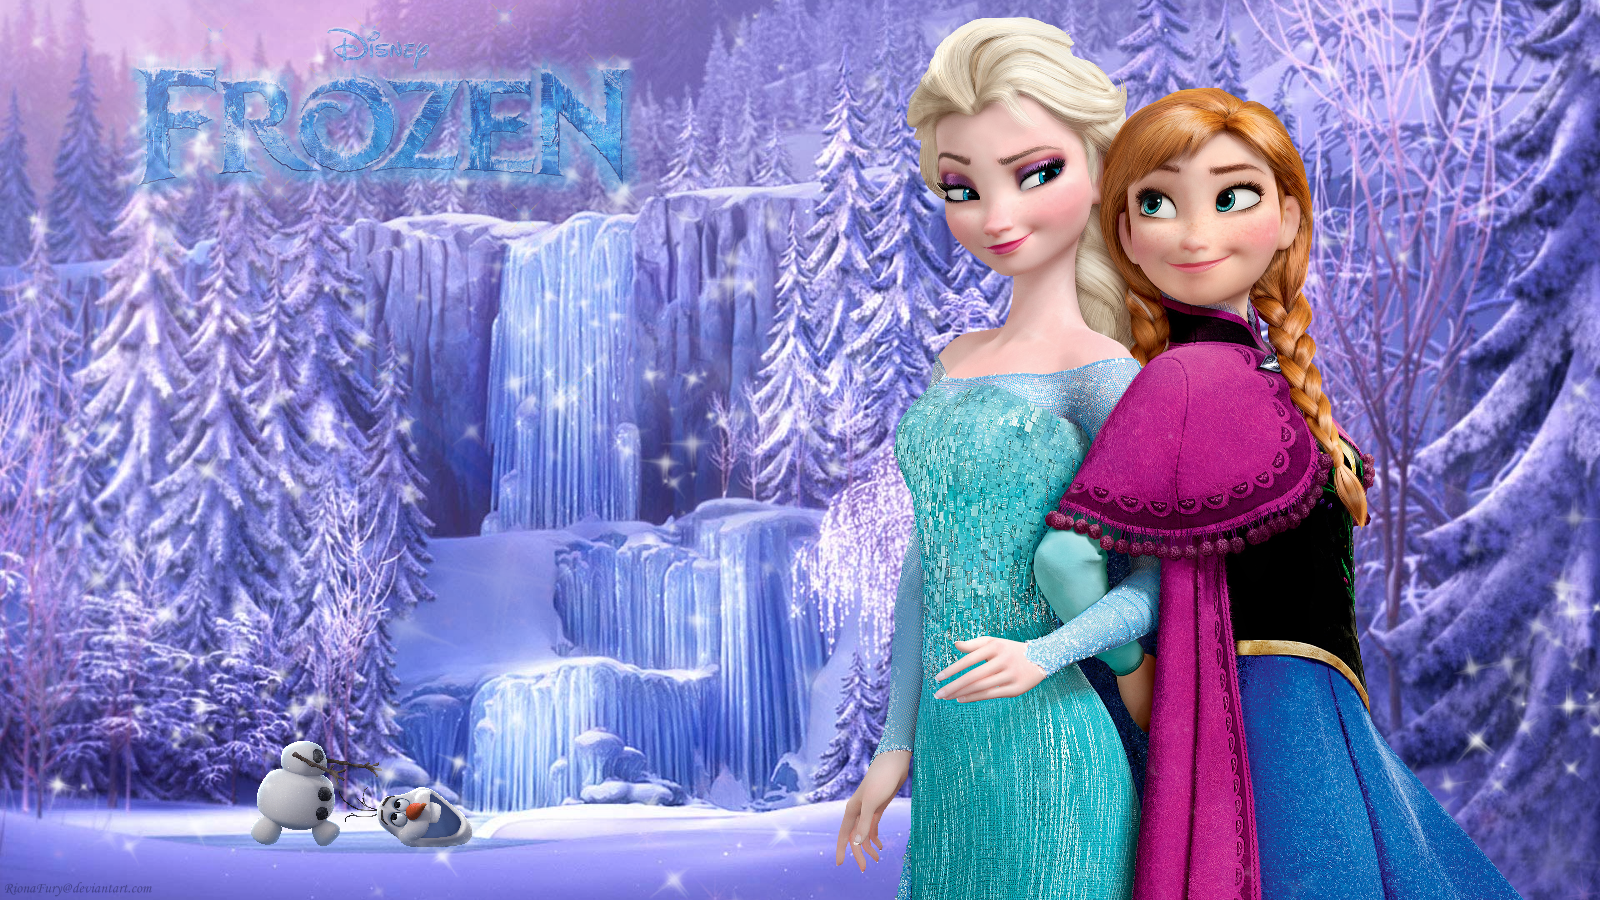 images of frozen | frozen sisters - frozen wallpaper (37732276